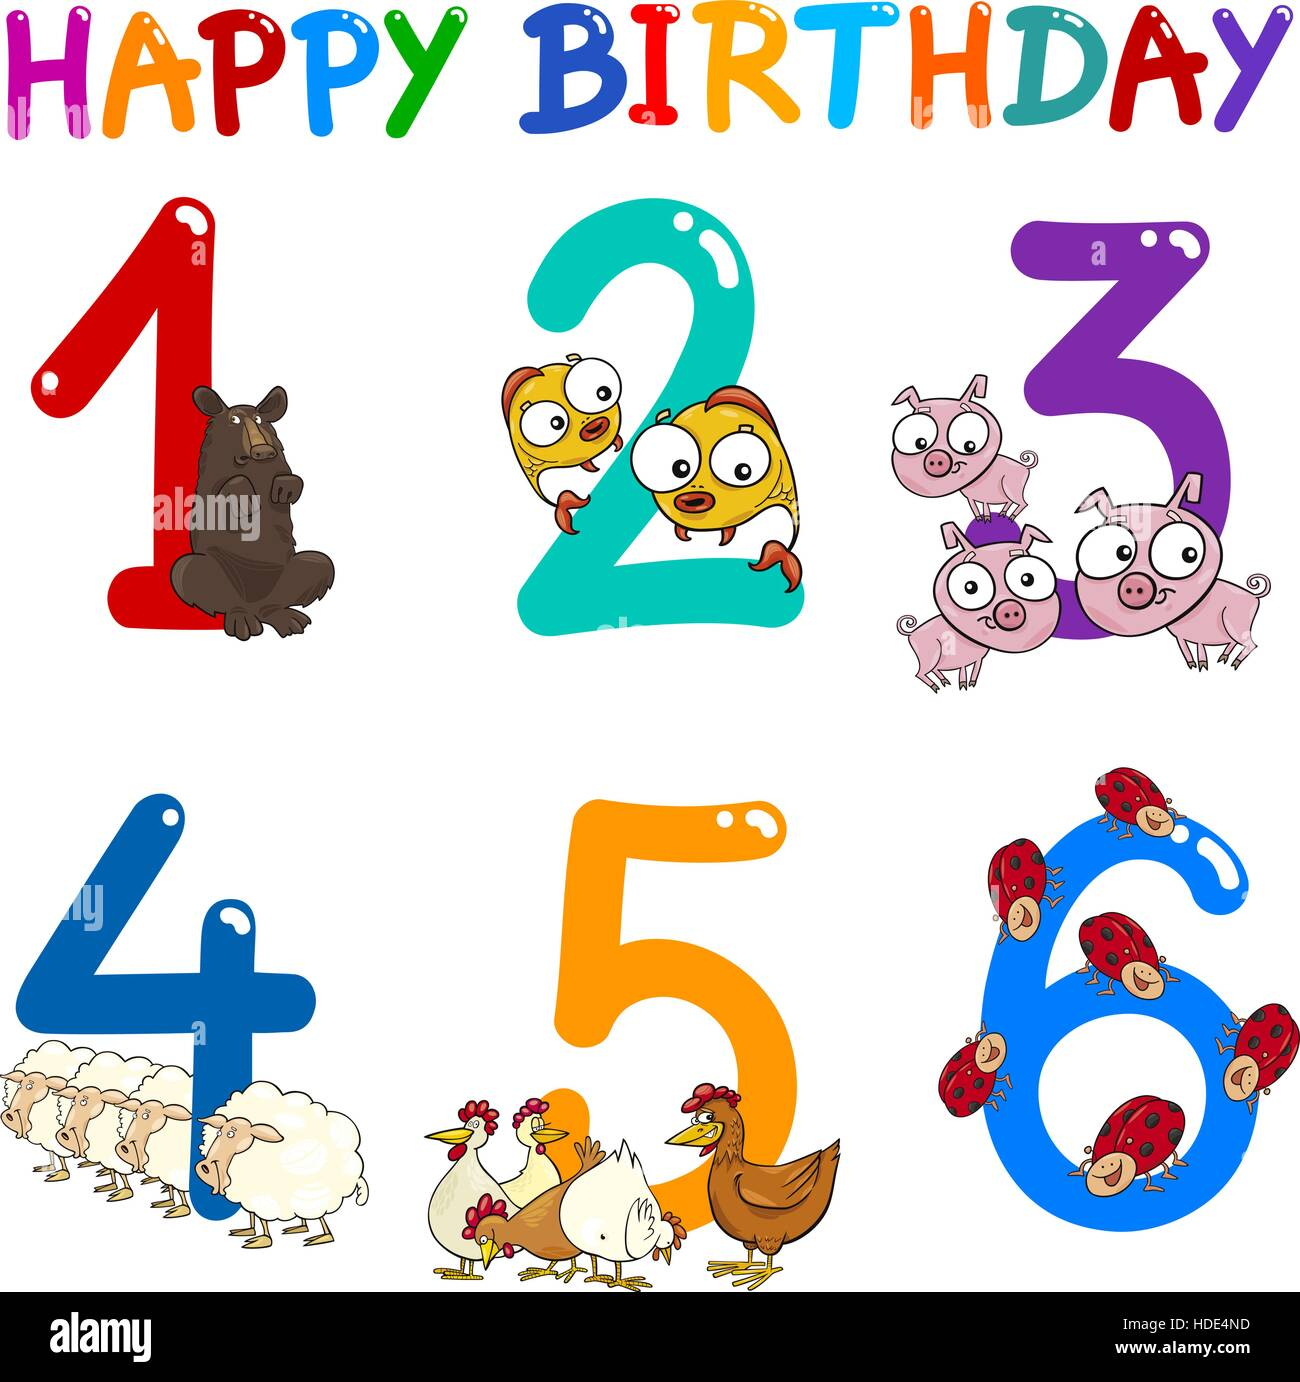 Cartoon Illustration Design Of The Birthday Greeting Cards Set For Children